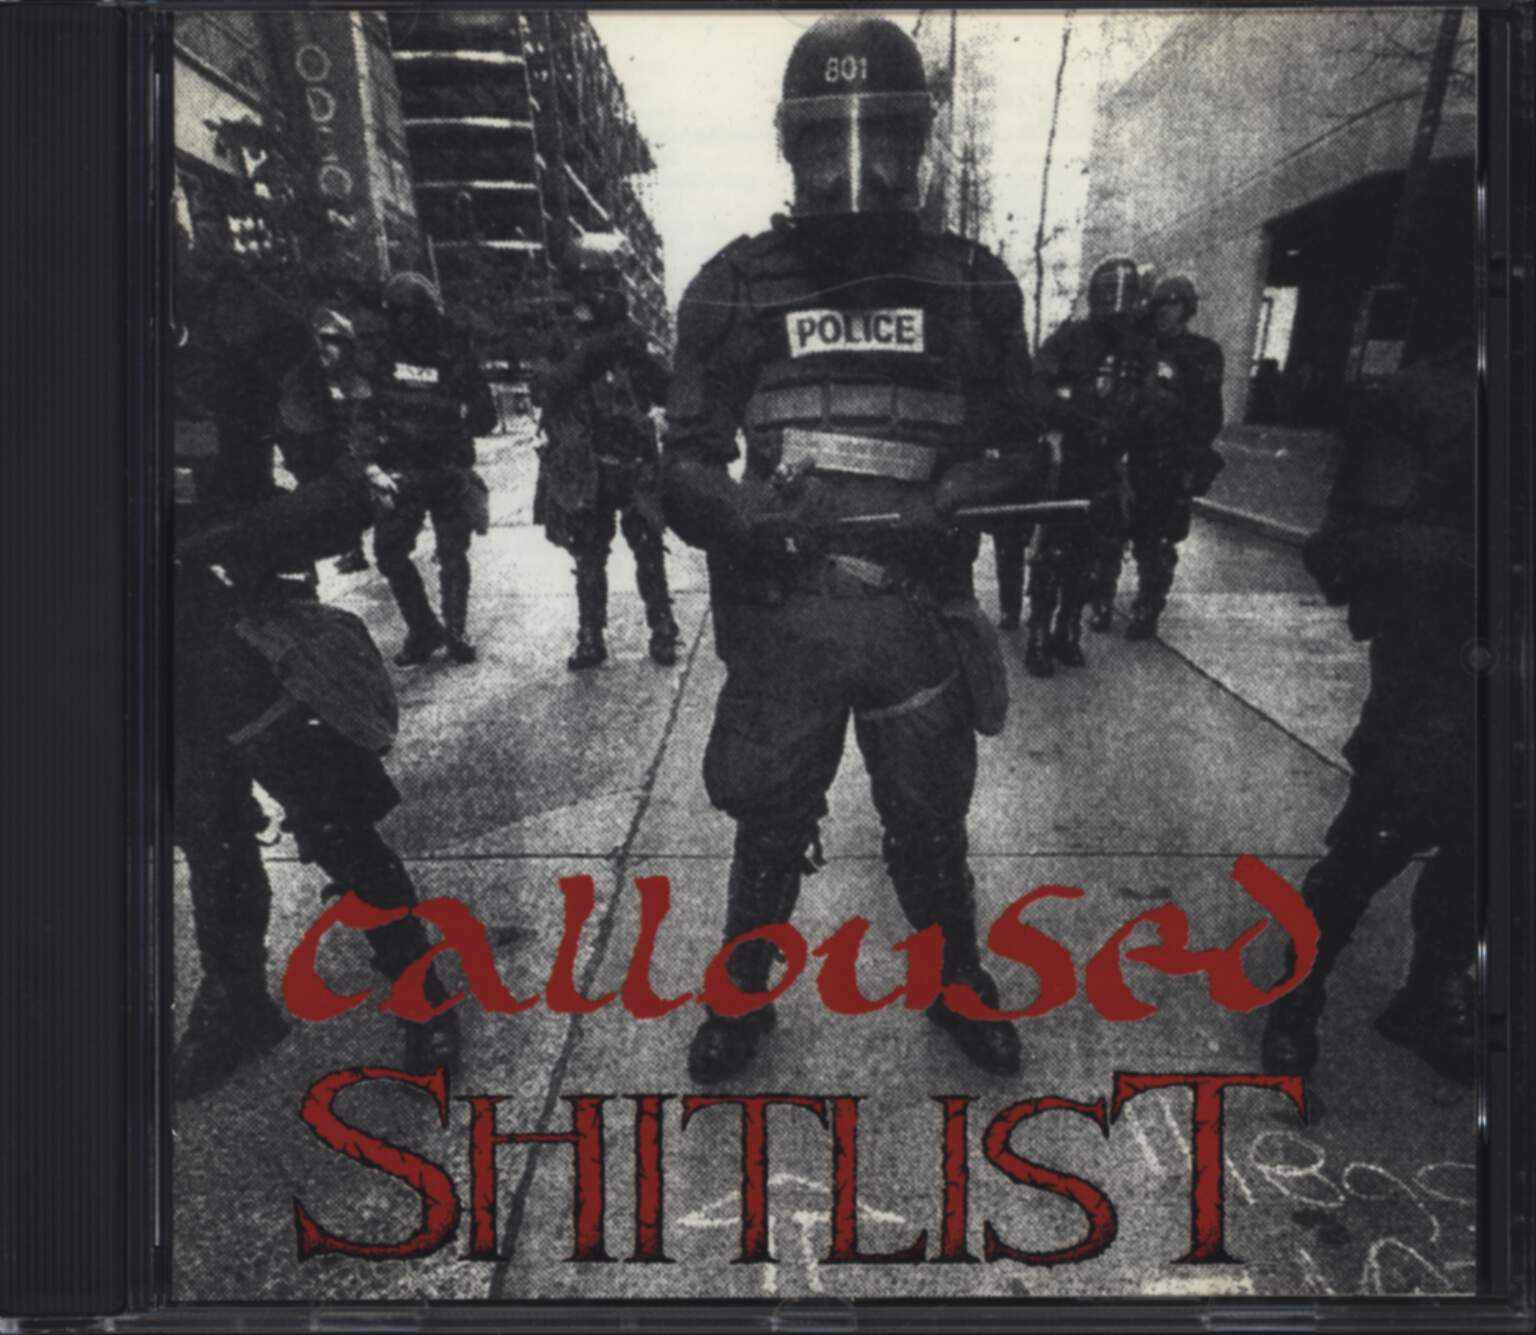 Calloused: Calloused / Shitlist, CD